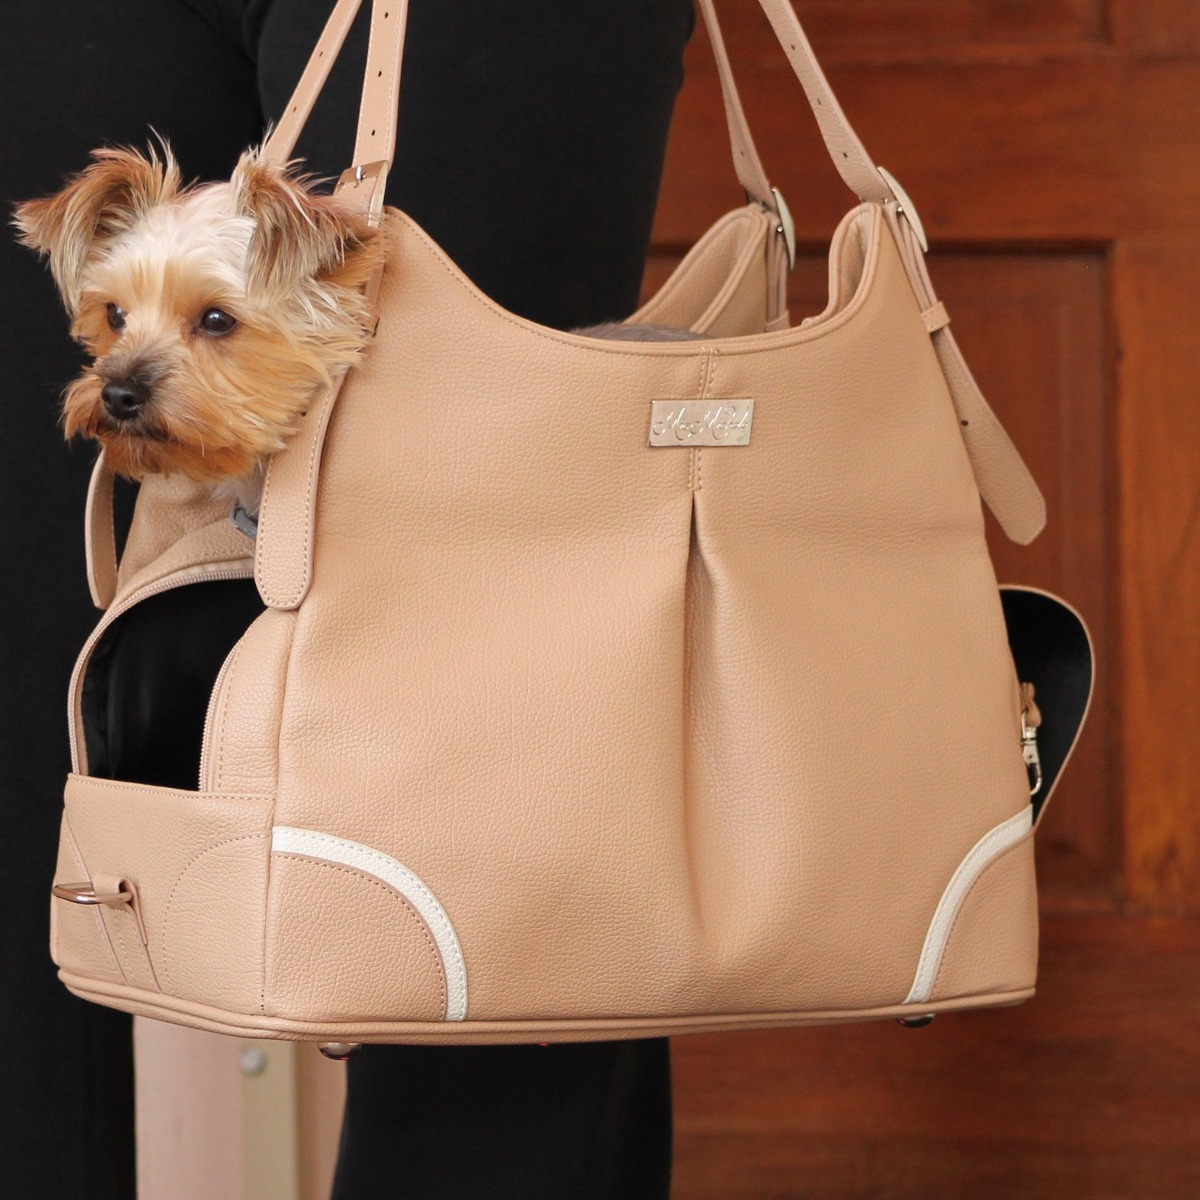 334deb59bd2c Madison mica michele mocha faux pebble leather dog carry bag jpg 1200x1200 Madison  bag